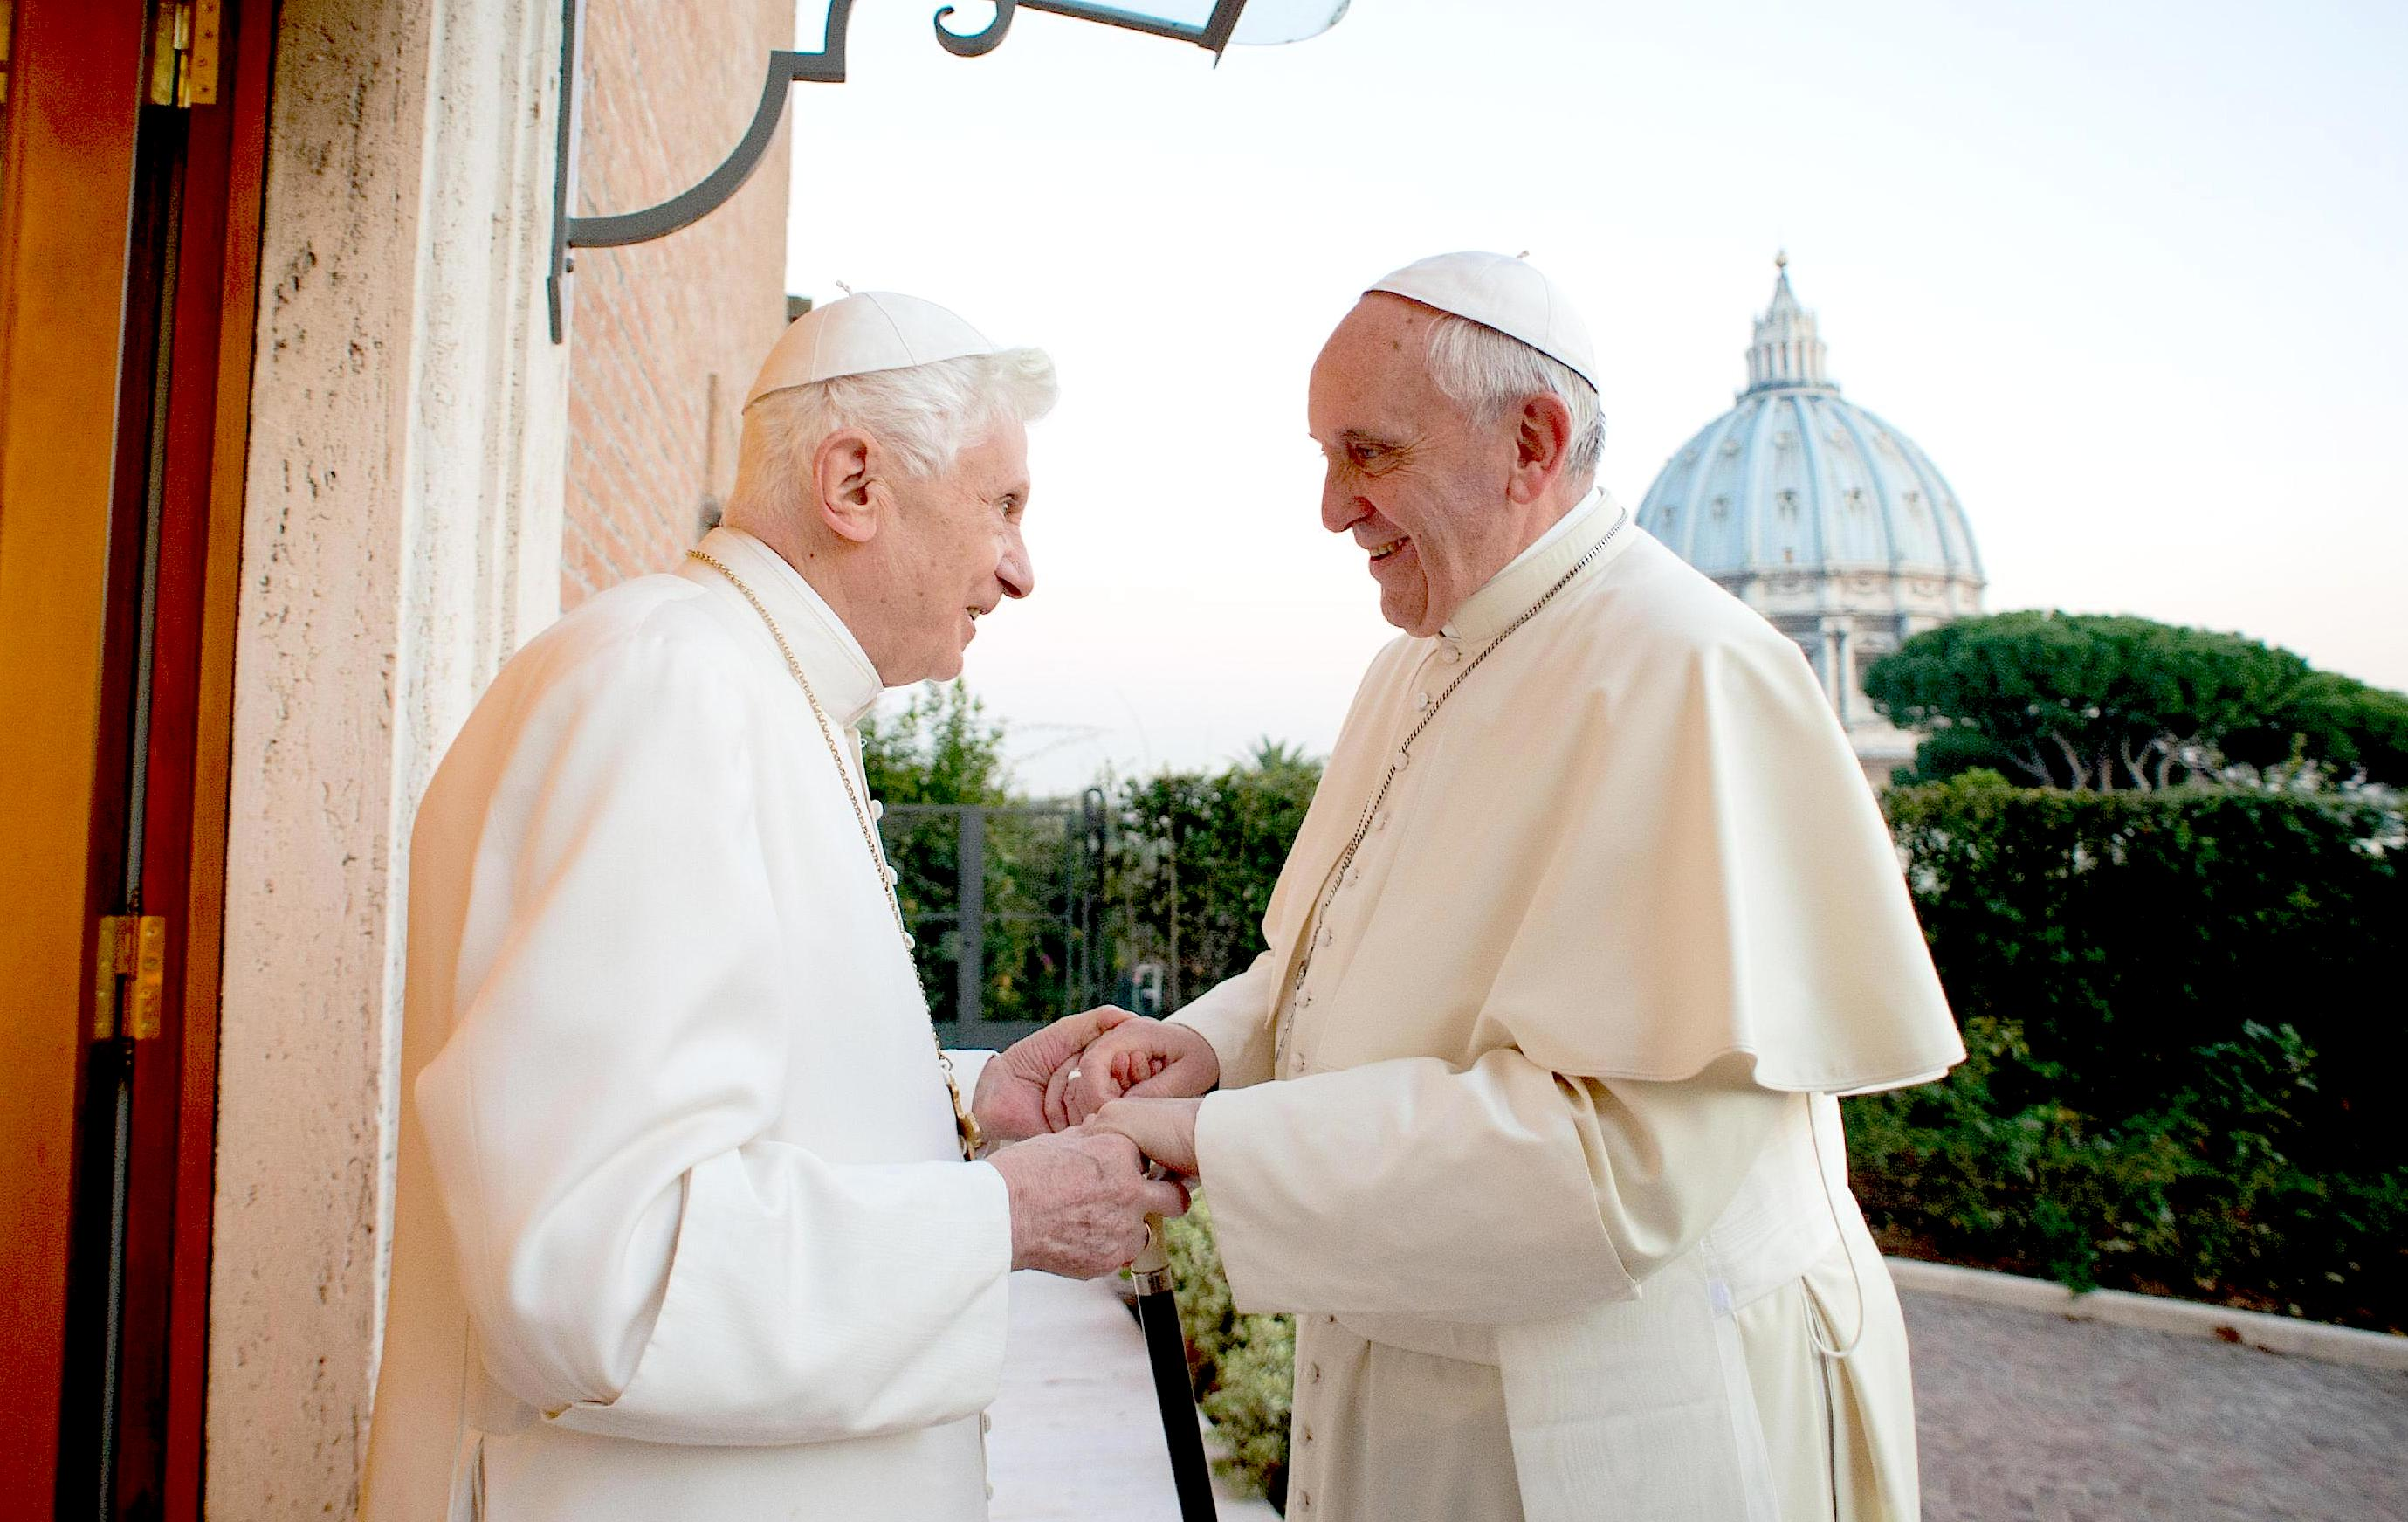 Pope Francis with pope emeritus Benedictus XVI